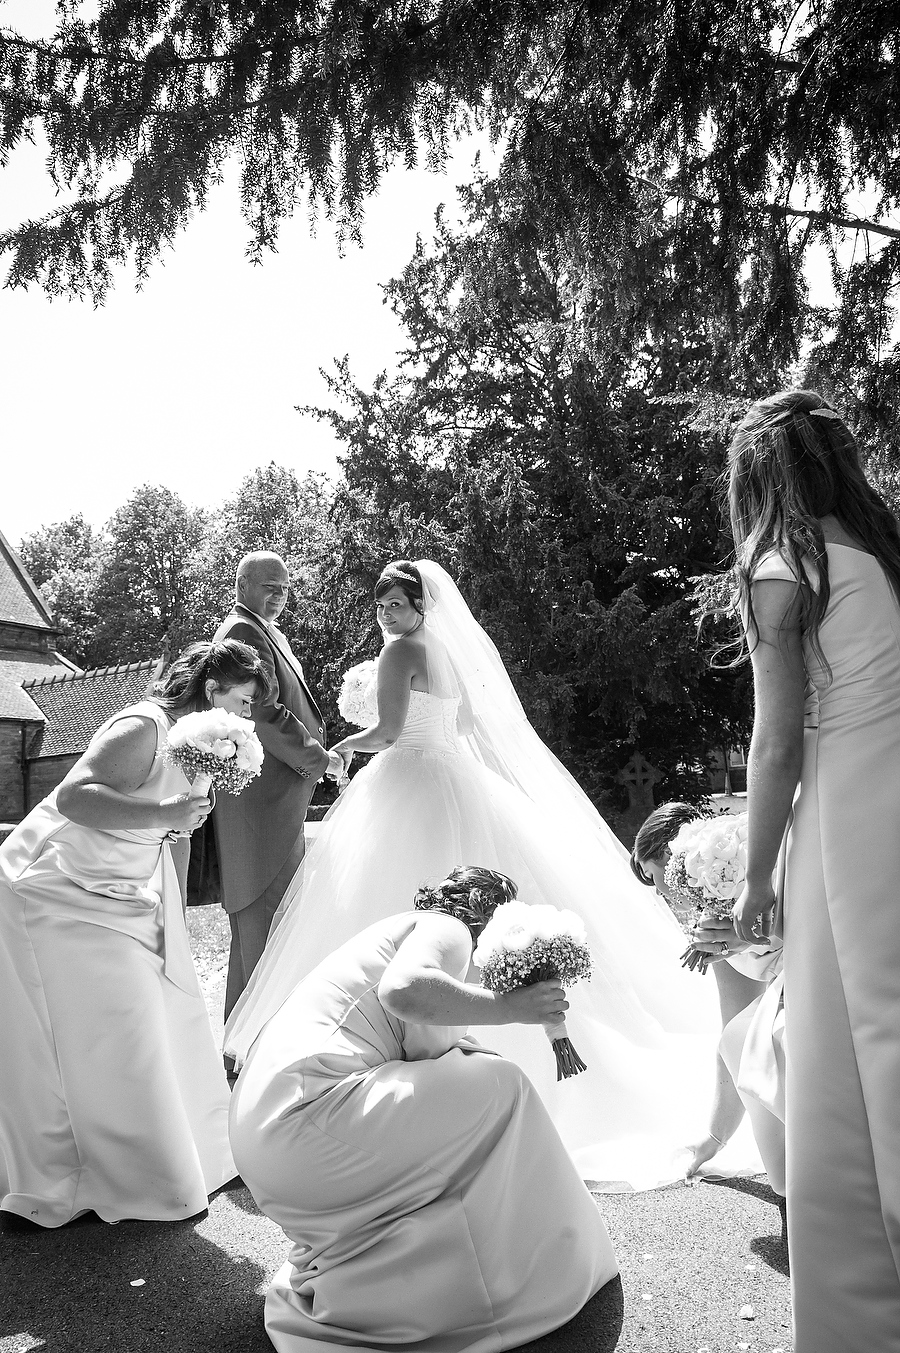 A beautiful moment between bride and bridesmaids candidly captured at St Marks Church in Great Wyrley by Cannock Wedding Photographer Barry James